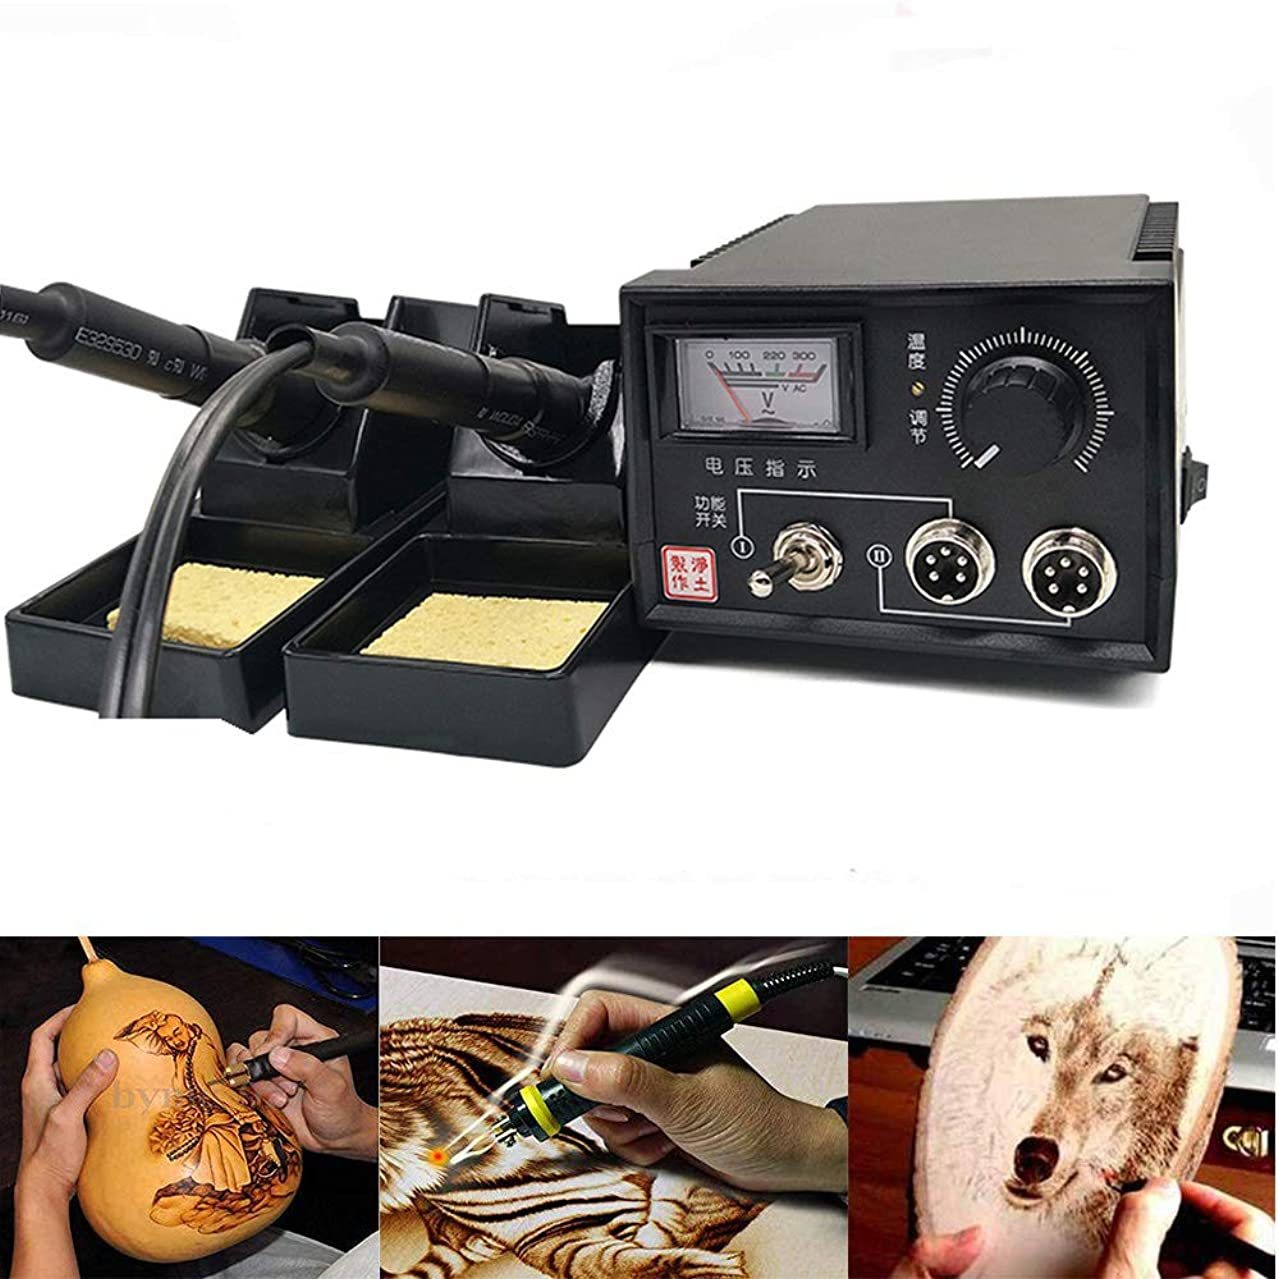 TOPCHANCES Professional Woodburning Detailer Laser Pyrography Machine Wood Burning Kit for Wood Leather,Christmas Nice Present (Dual Poniter Display)